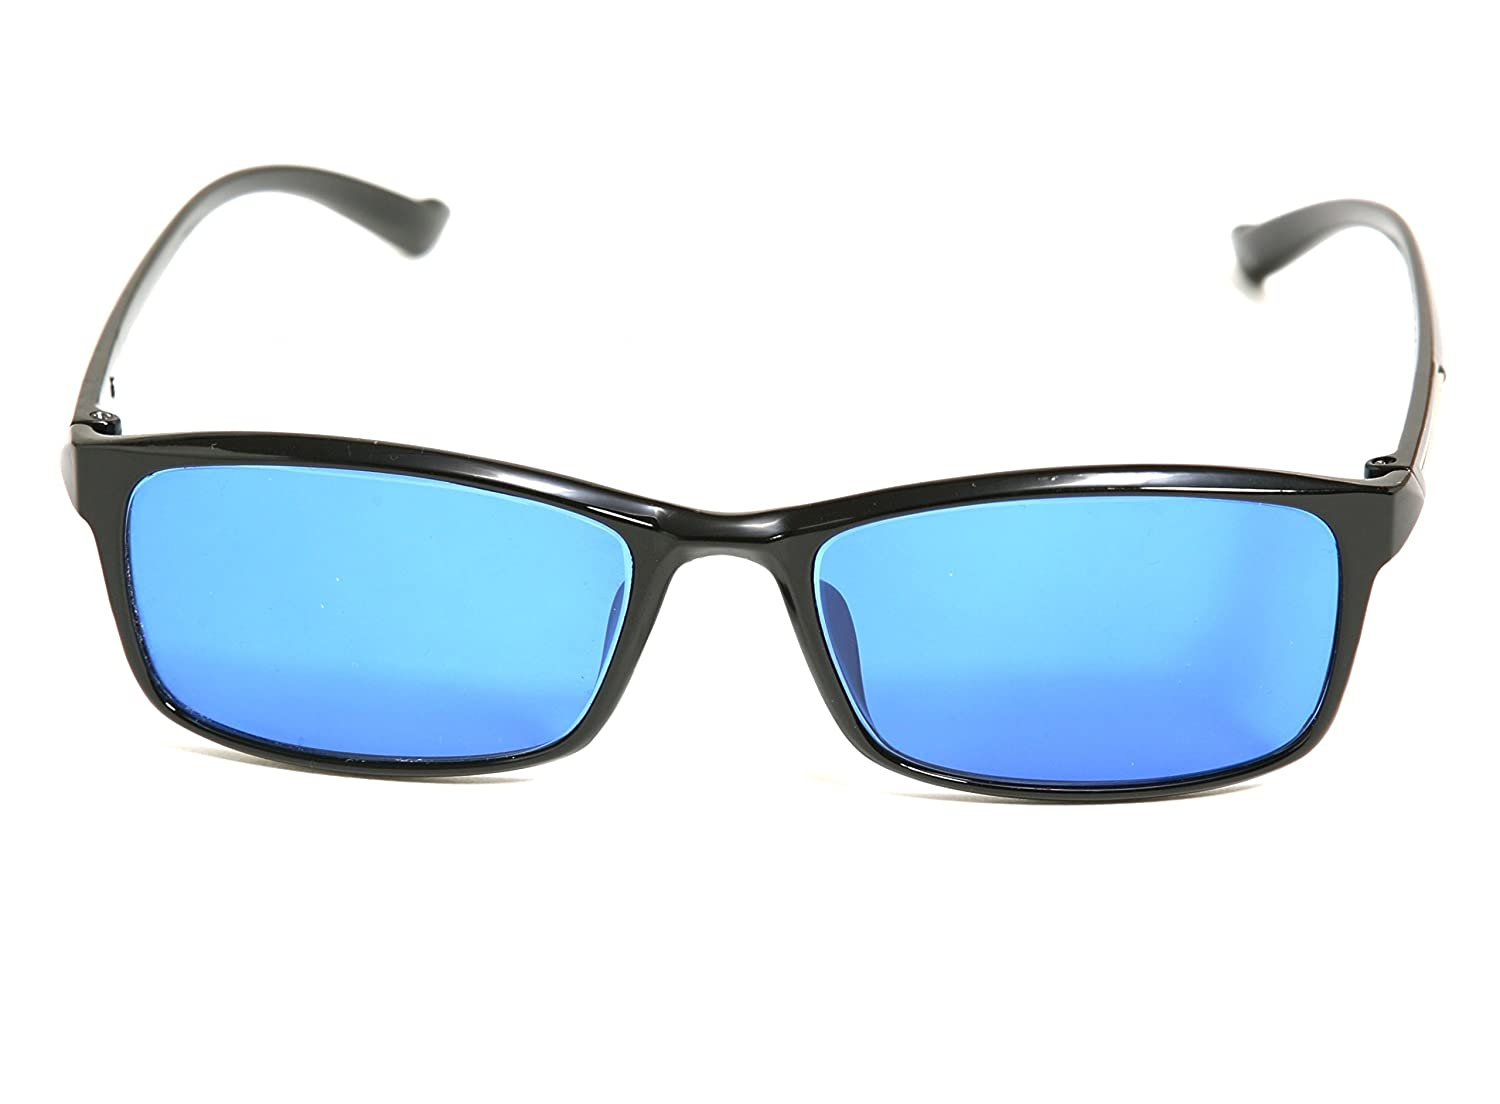 Amazon.com: TP-008, lentes de color azul (Tritanomaly ...